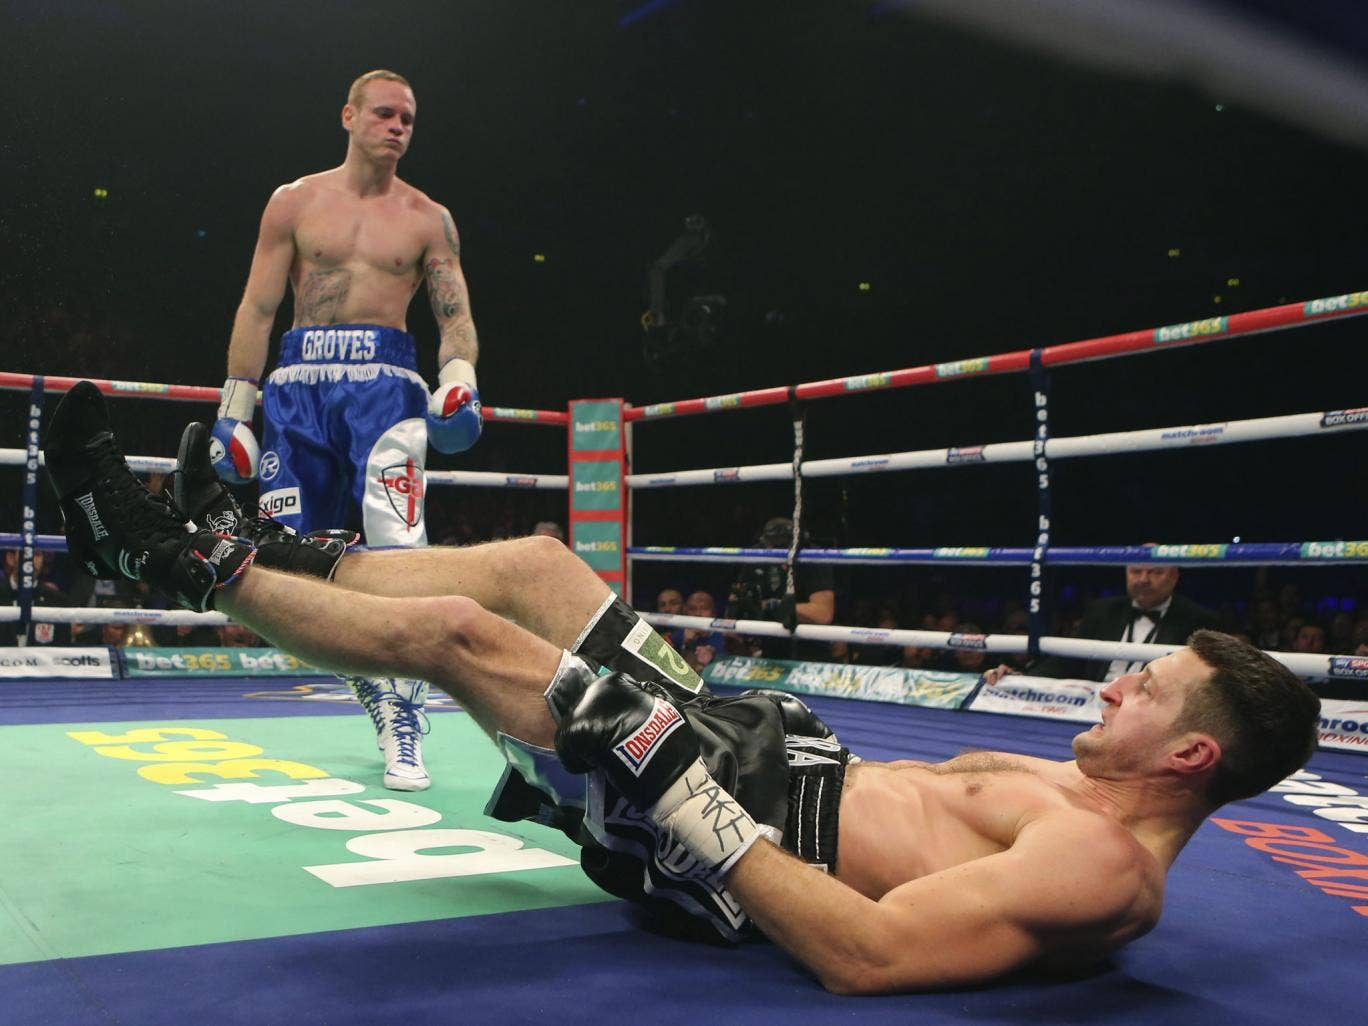 George Groves puts Carl Froch on the canvas during their super-middleweight title fight